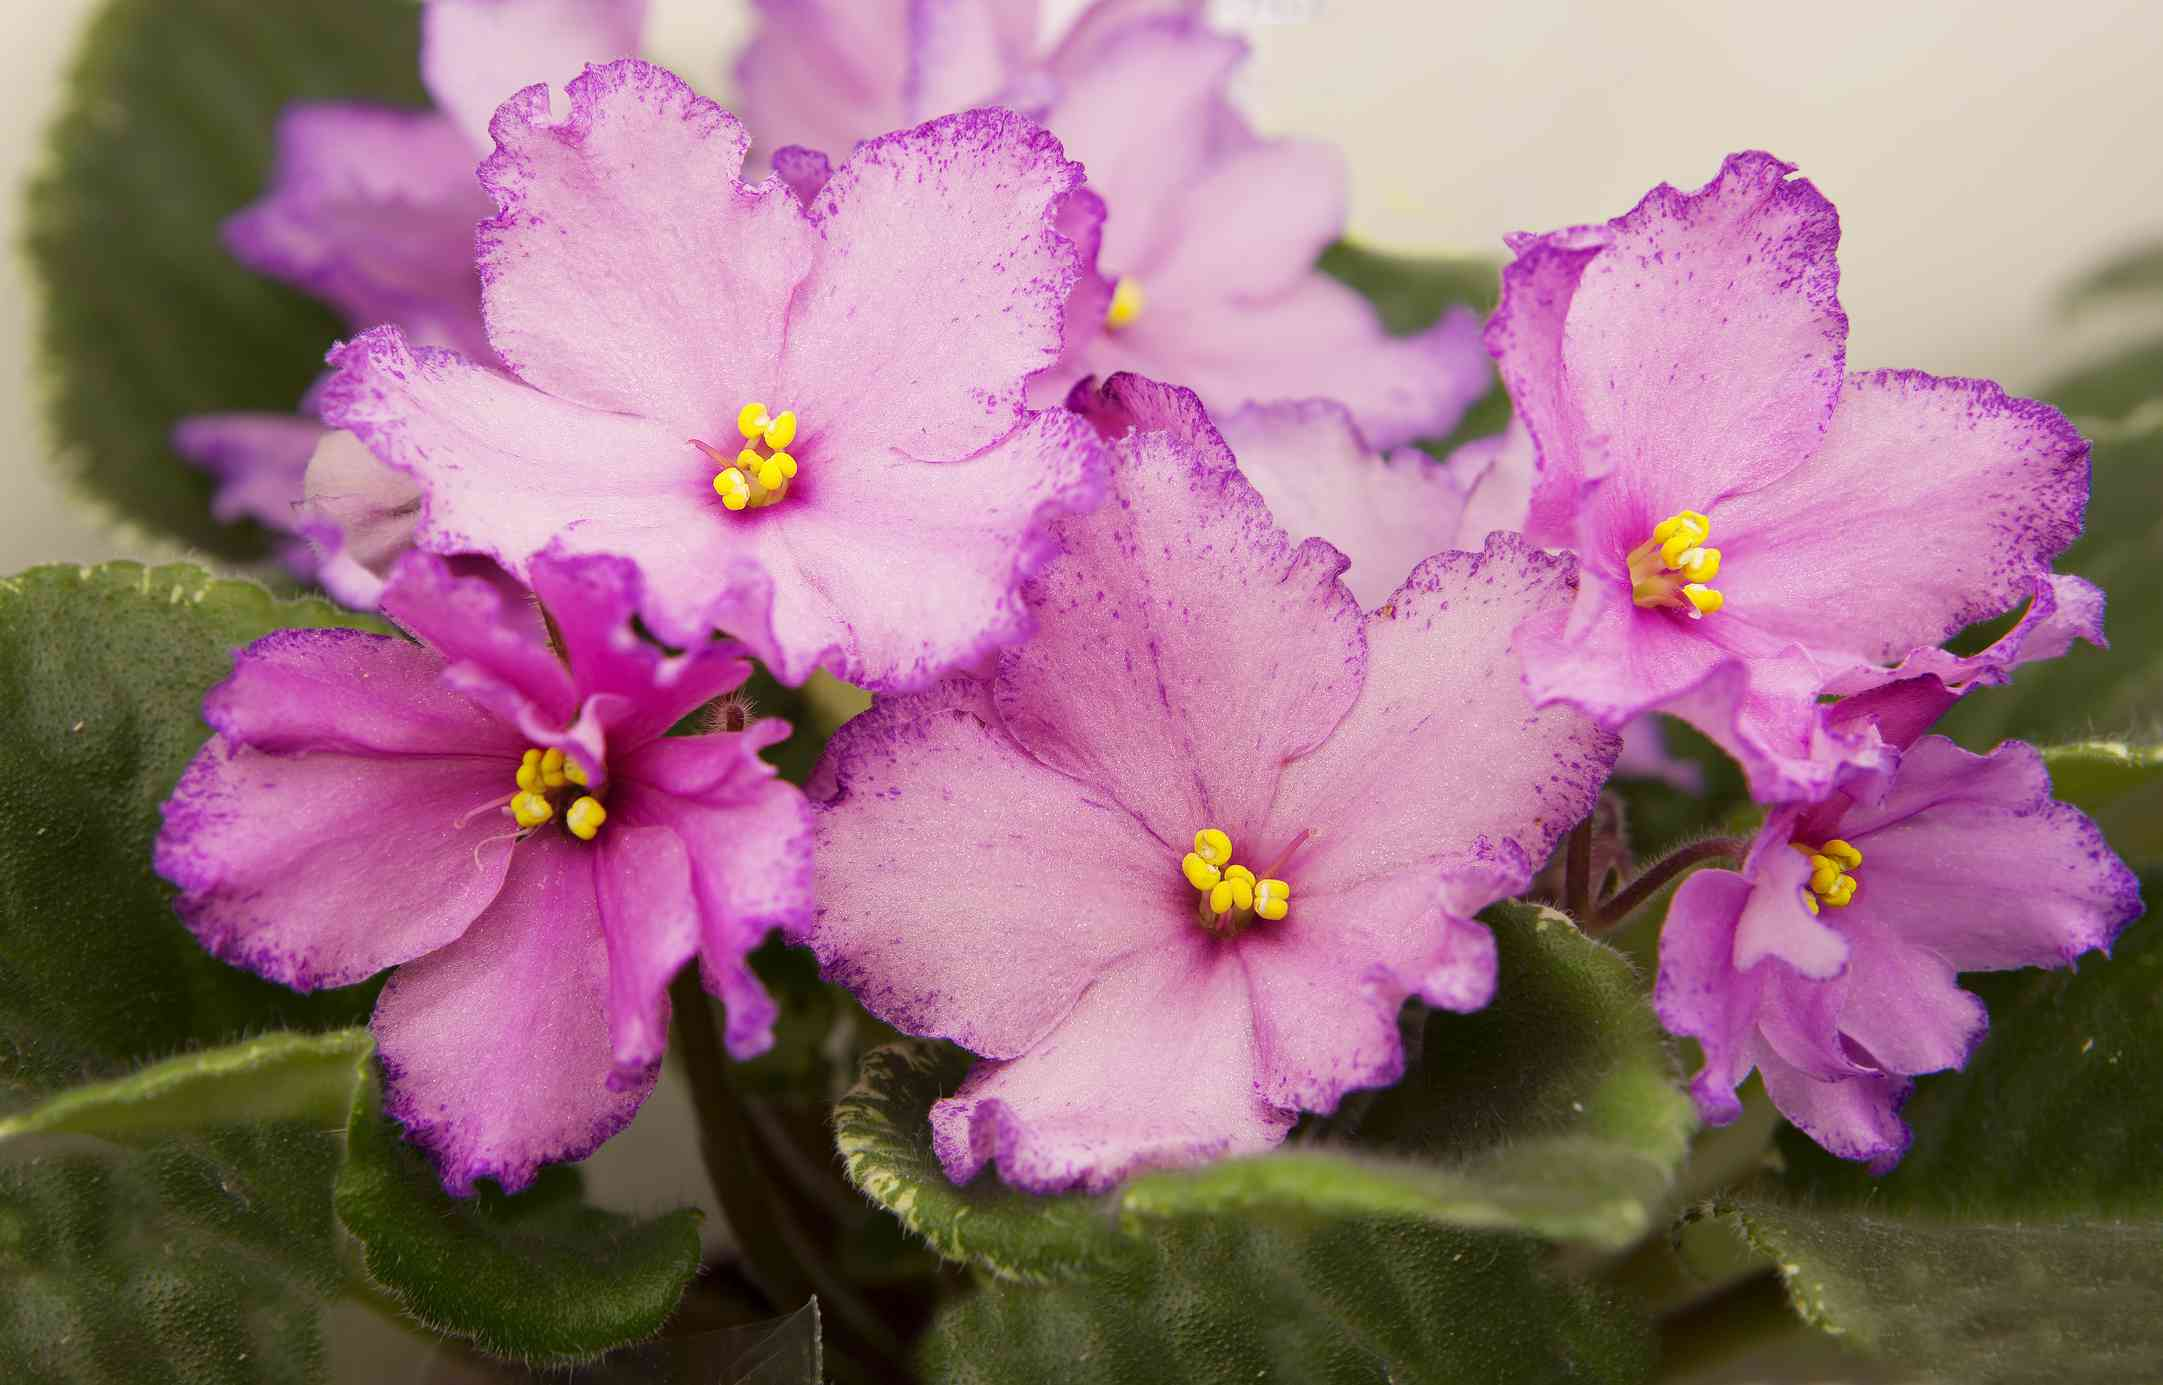 bright pink african violet flowers surrounded by green leaves